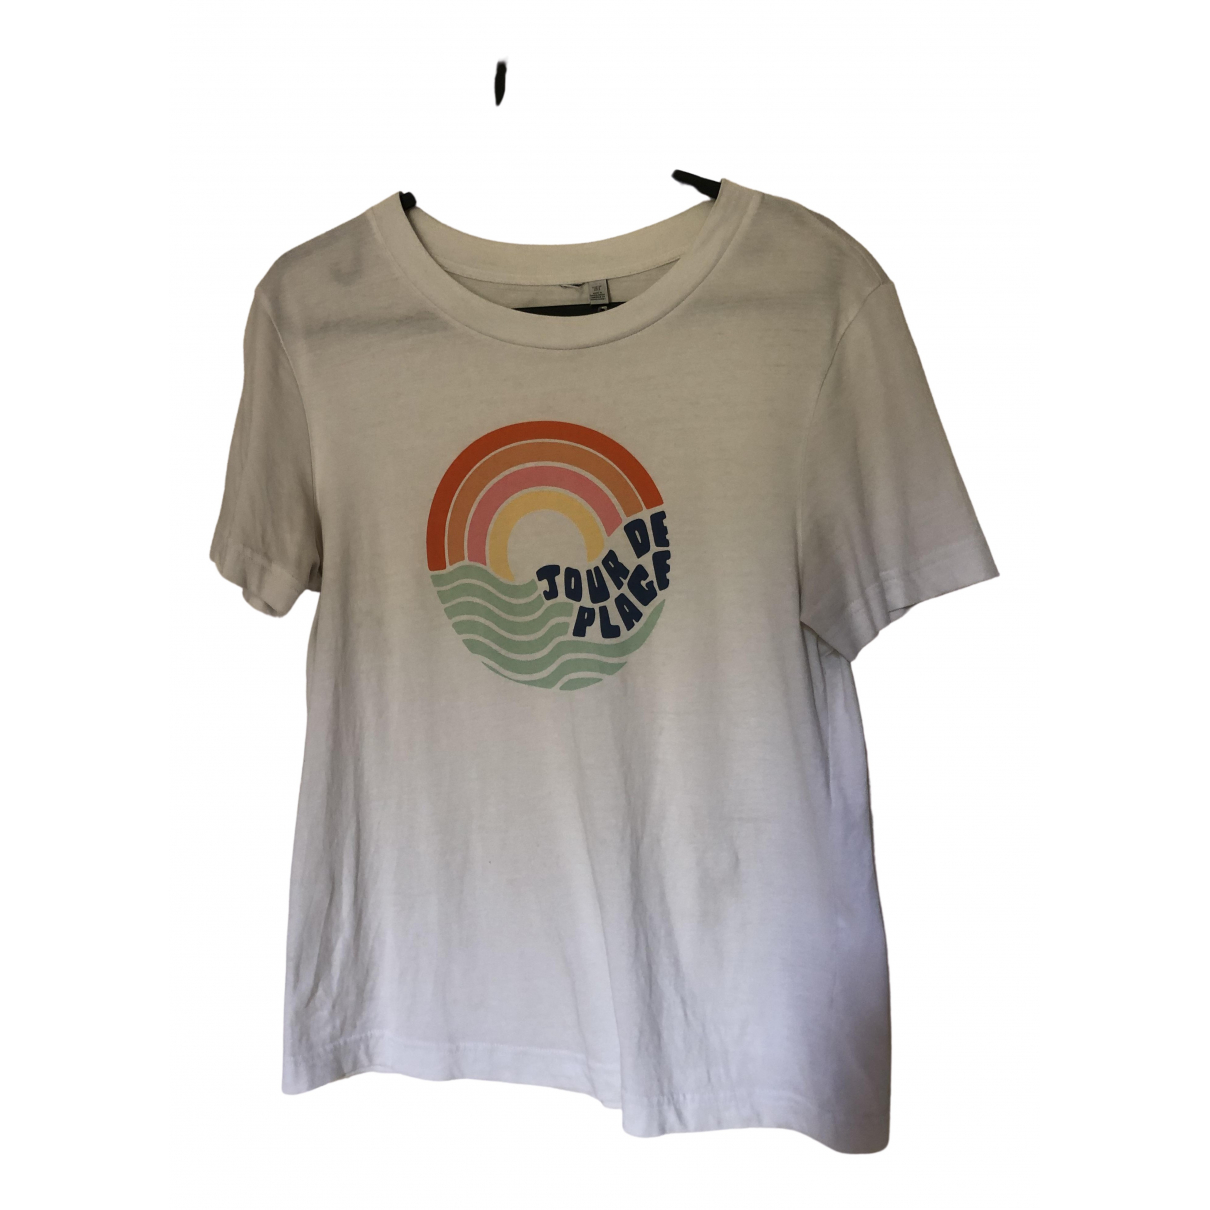 & Stories \N White Cotton  top for Women 34 FR